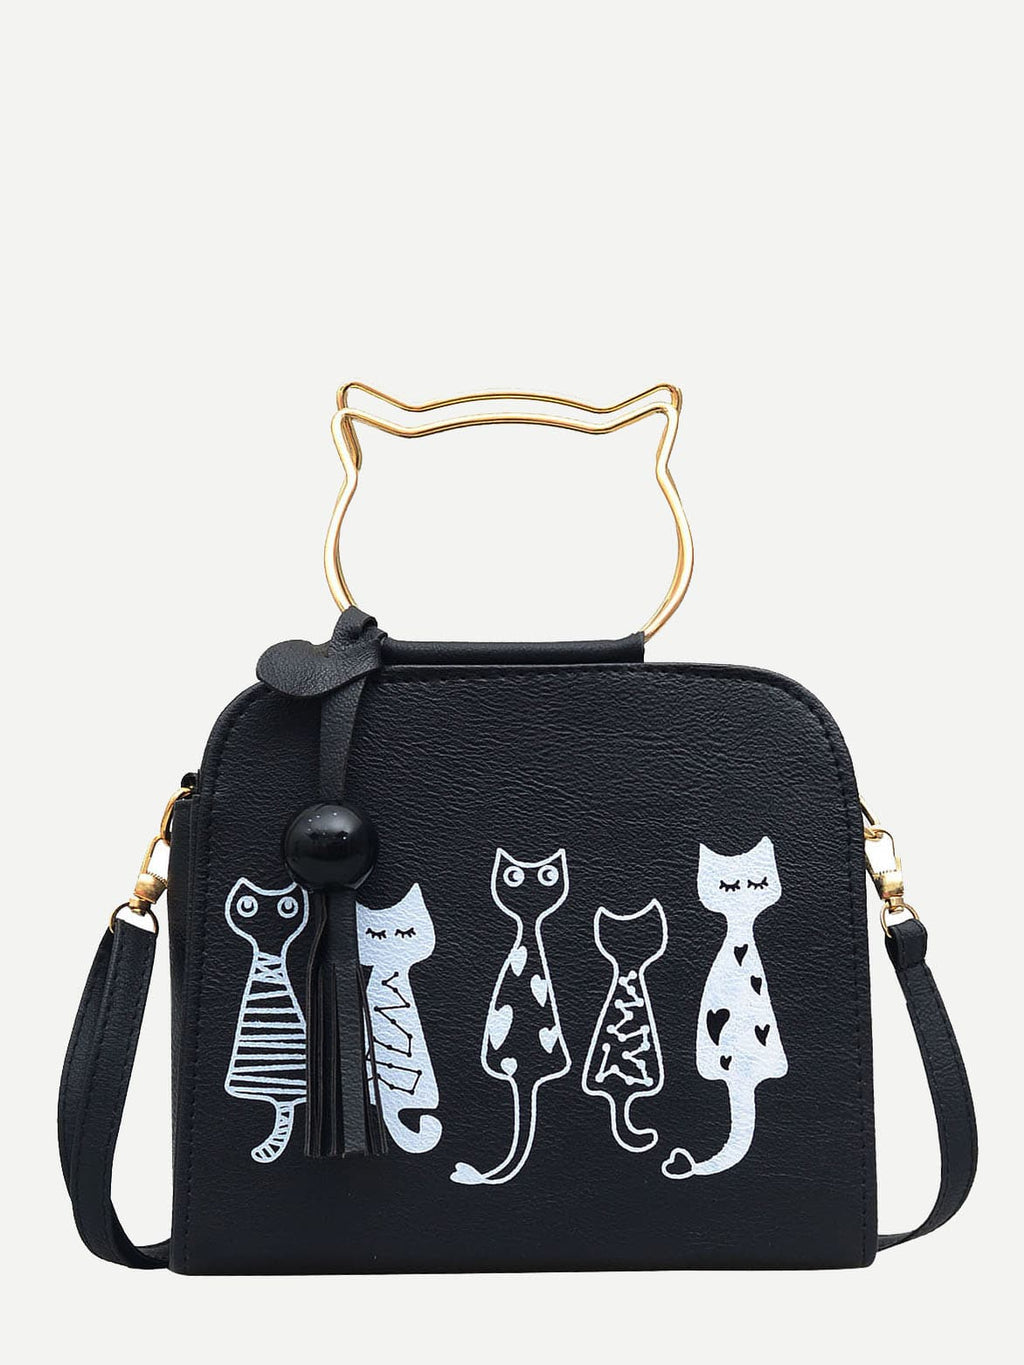 Womens Bags - Cartoon Print PU Shoulder Bag With Cat Ear Handle